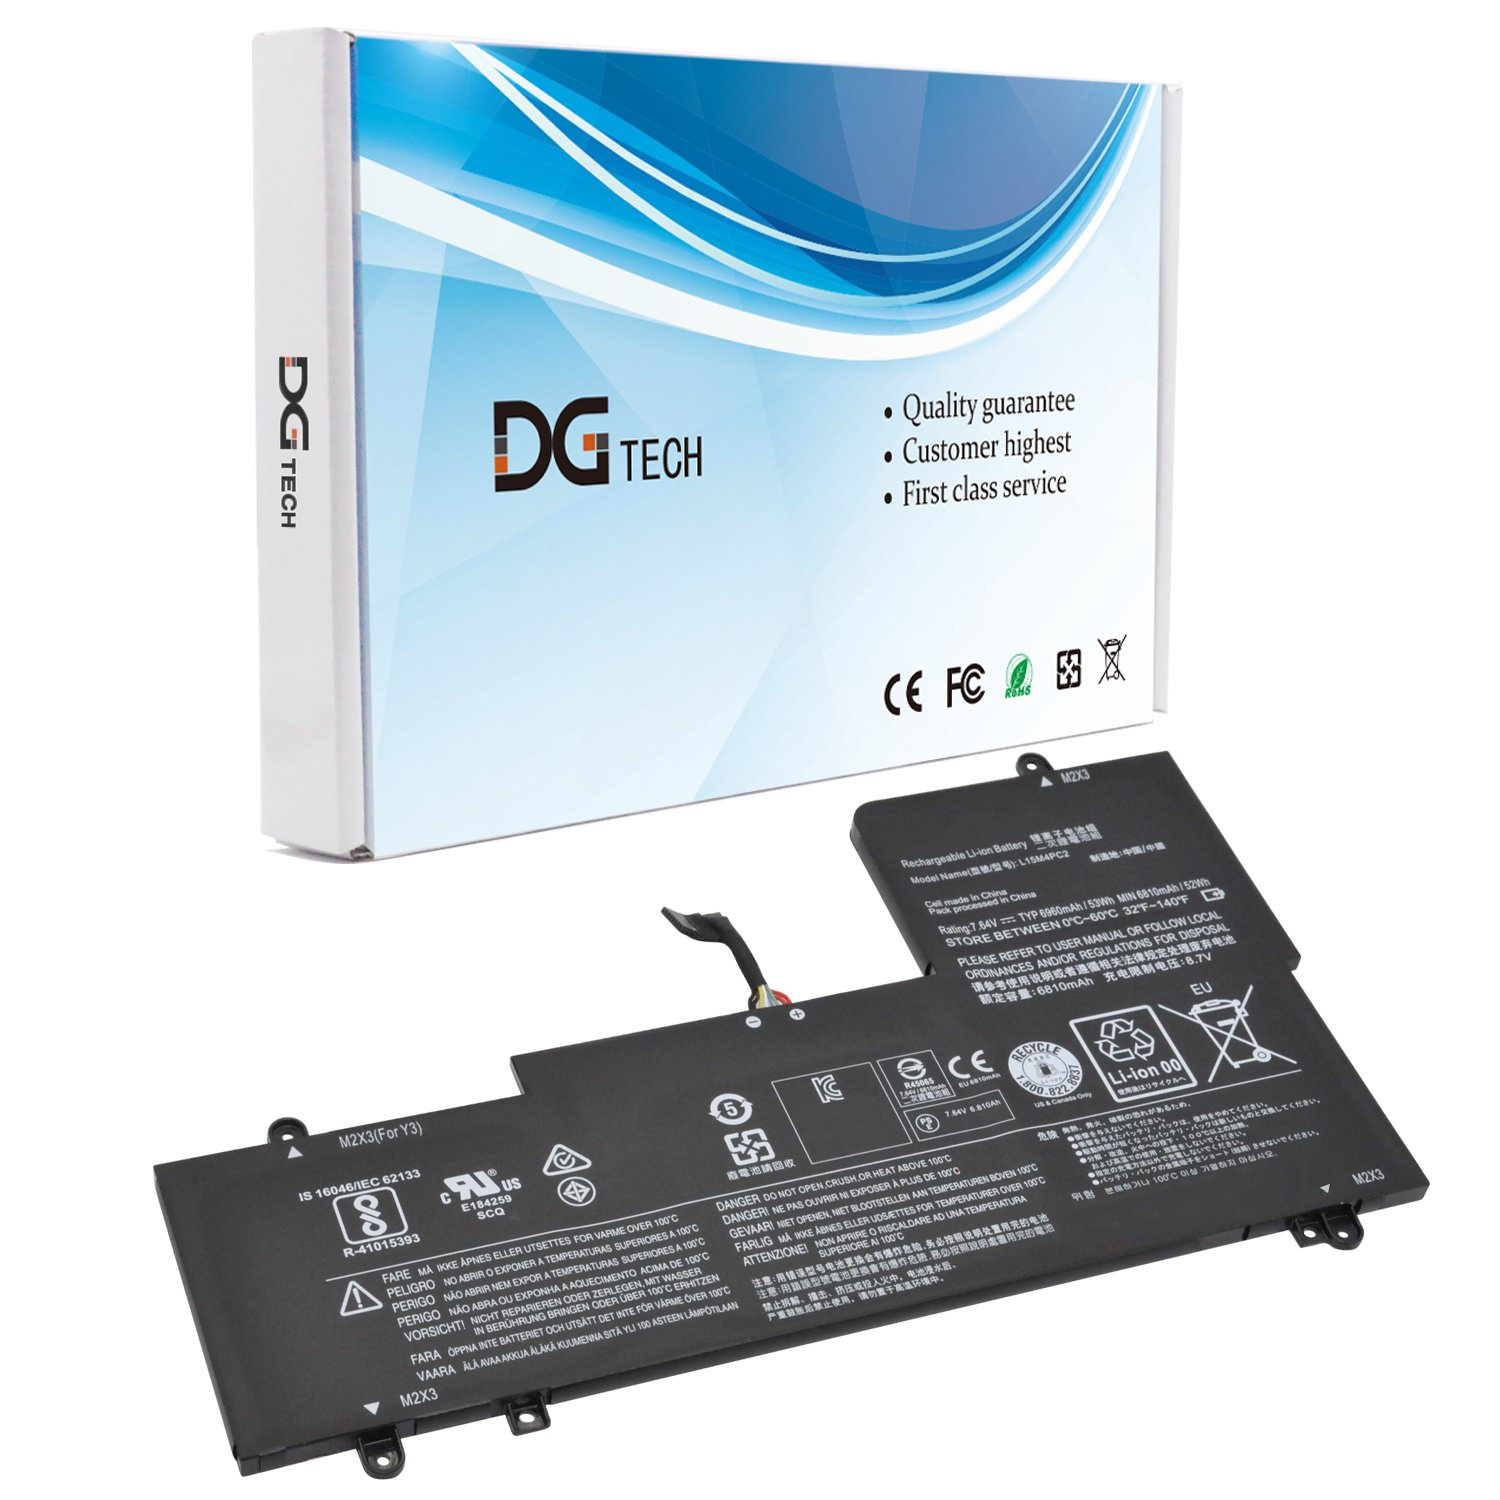 Amazon.com: DGTECH L15M4PC2 L15L4PC2 Laptop Battery ...